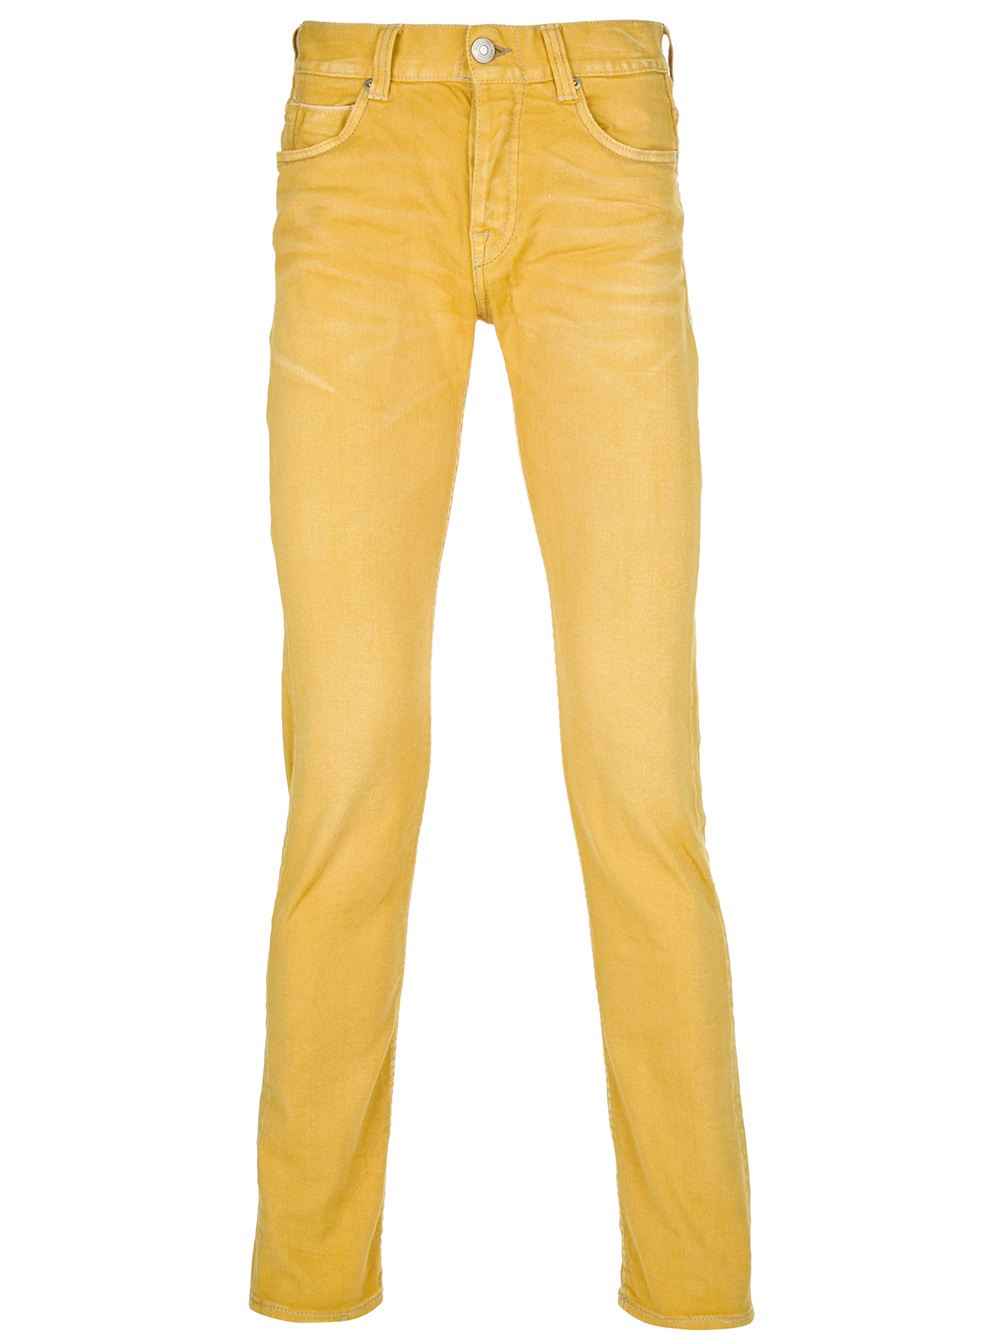 Shop the Latest Collection of Yellow Jeans for Men Online at heresfilmz8.ga FREE SHIPPING AVAILABLE! Macy's Presents: The Edit - A curated mix of fashion and inspiration Check It Out Free Shipping with $49 purchase + Free Store Pickup.